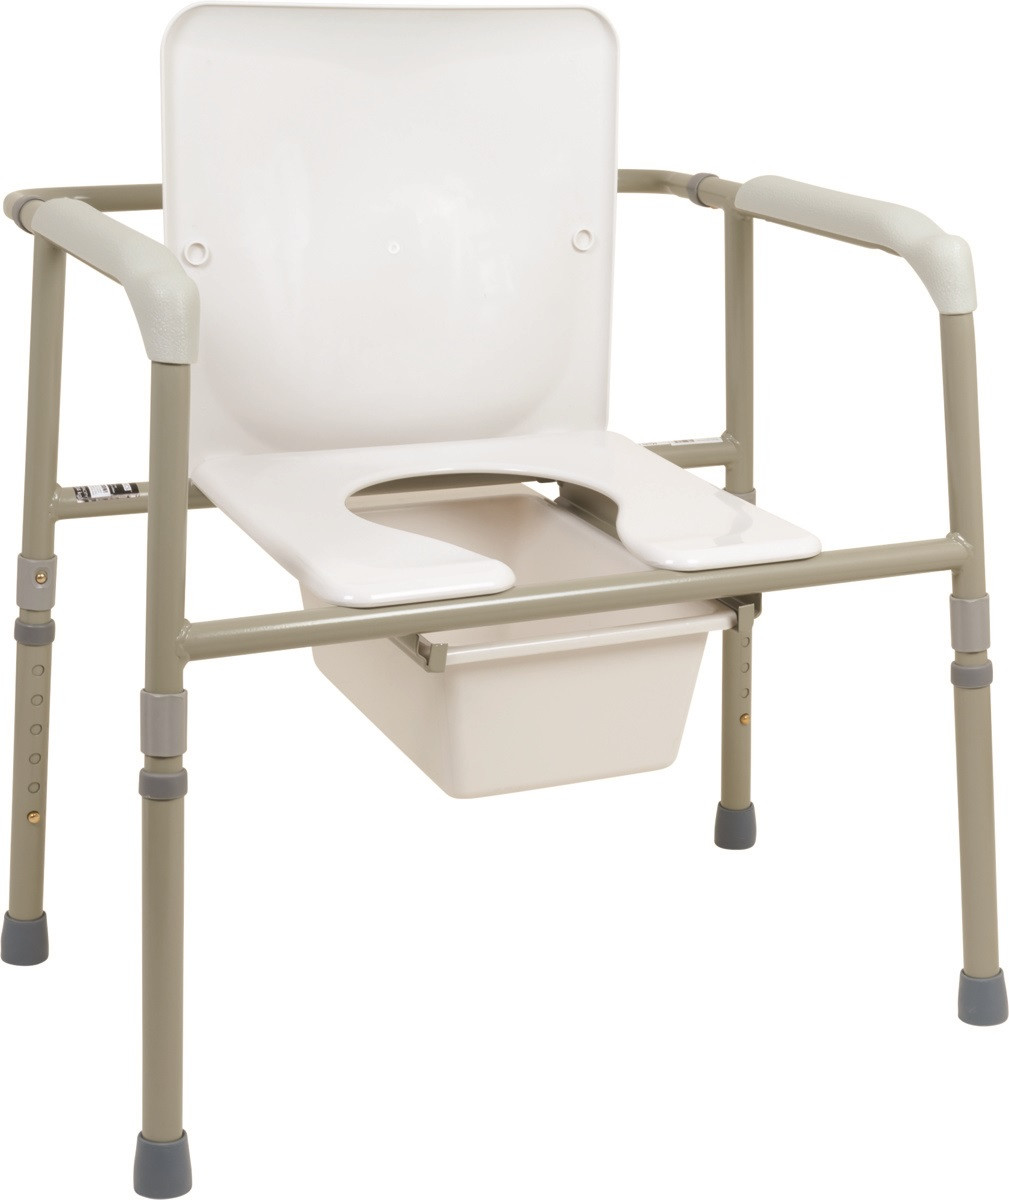 release date: d86f6 3507e Probasics Heavy Duty Commode Extra Wide Bedside Chair